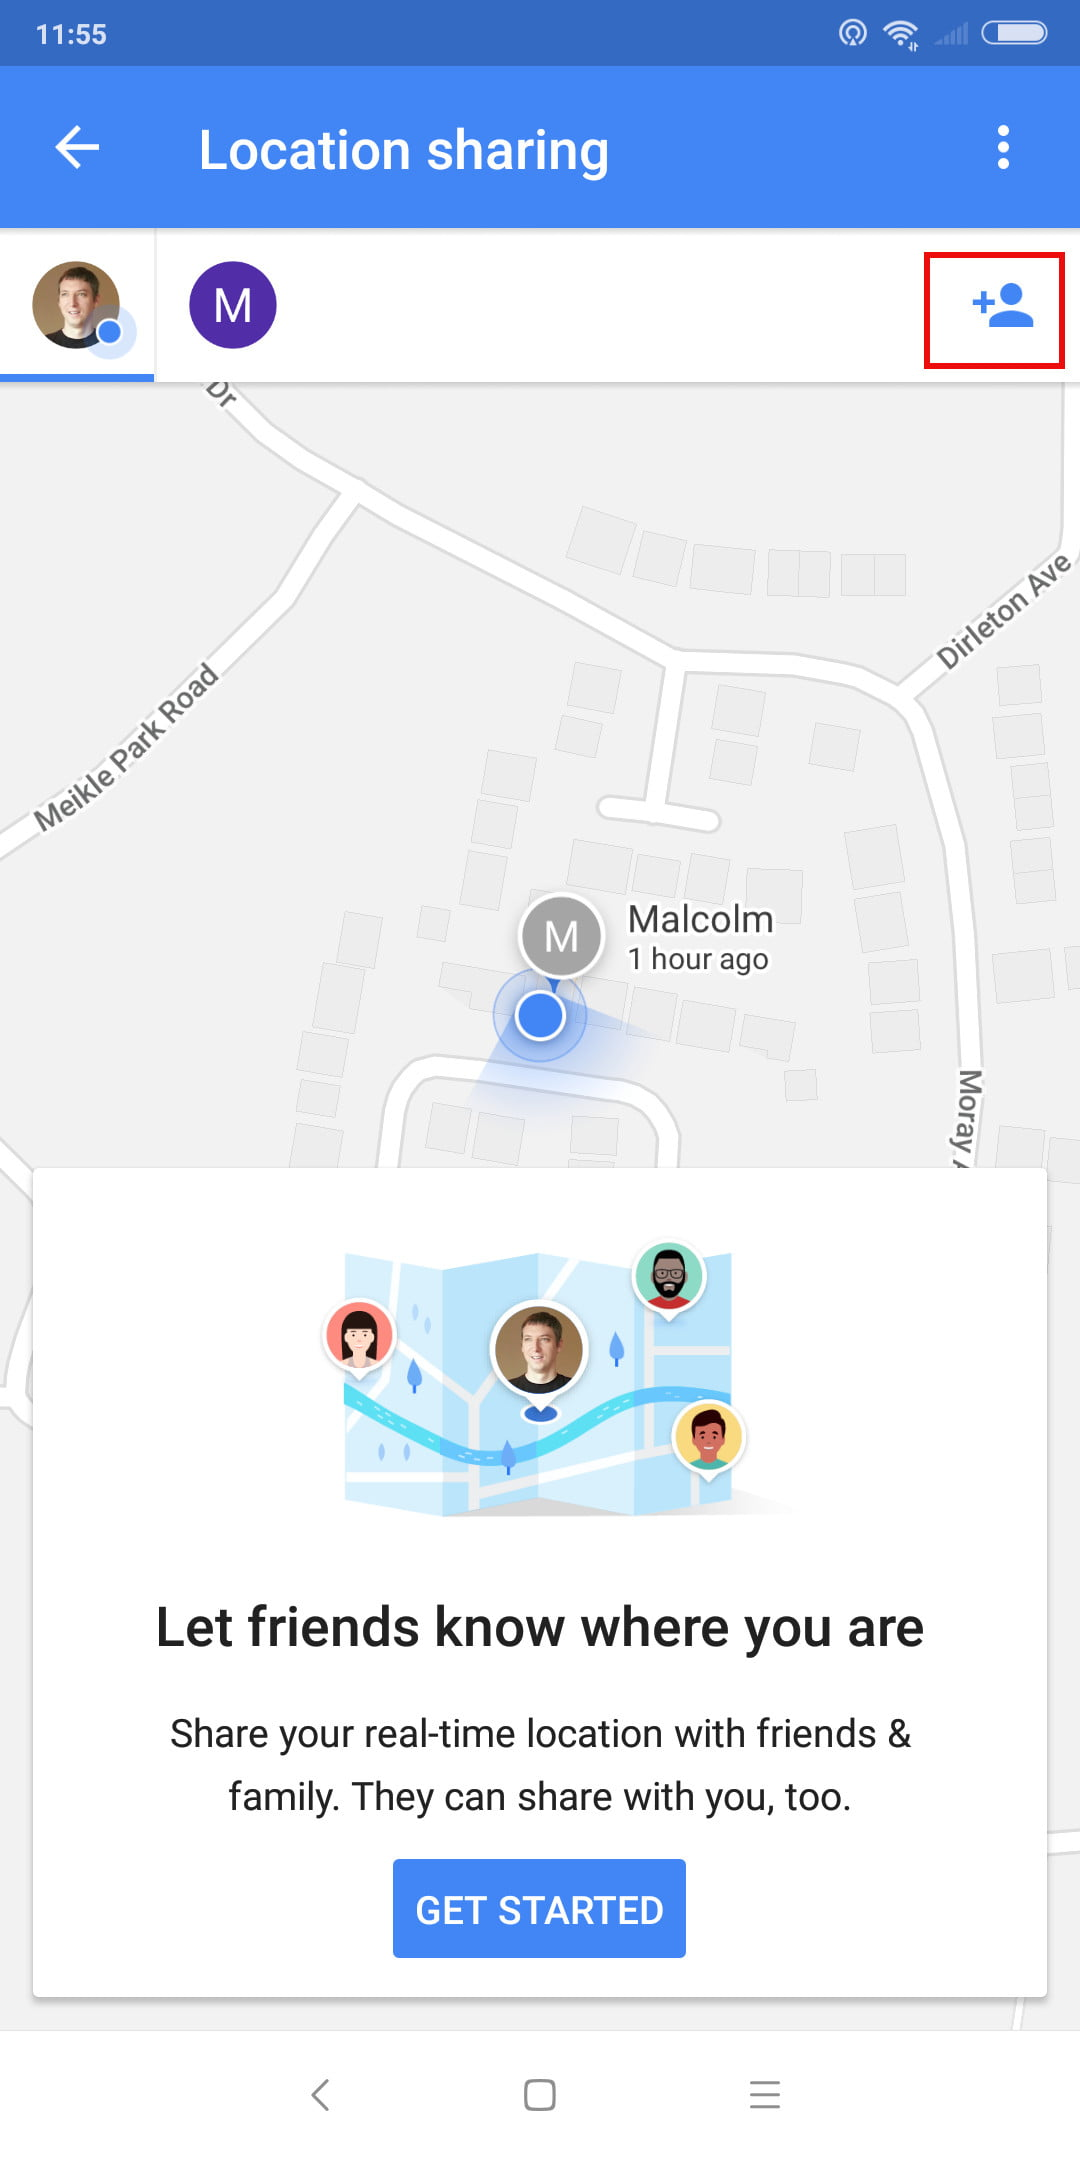 How to Use Google Maps | Digital Trends Google Map Direct Distance on stanford university maps, amazon fire phone maps, ipad maps, microsoft maps, aerial maps, bing maps, online maps, android maps, googie maps, search maps, topographic maps, waze maps, goolge maps, road map usa states maps, googlr maps, iphone maps, gppgle maps, gogole maps, msn maps, aeronautical maps,